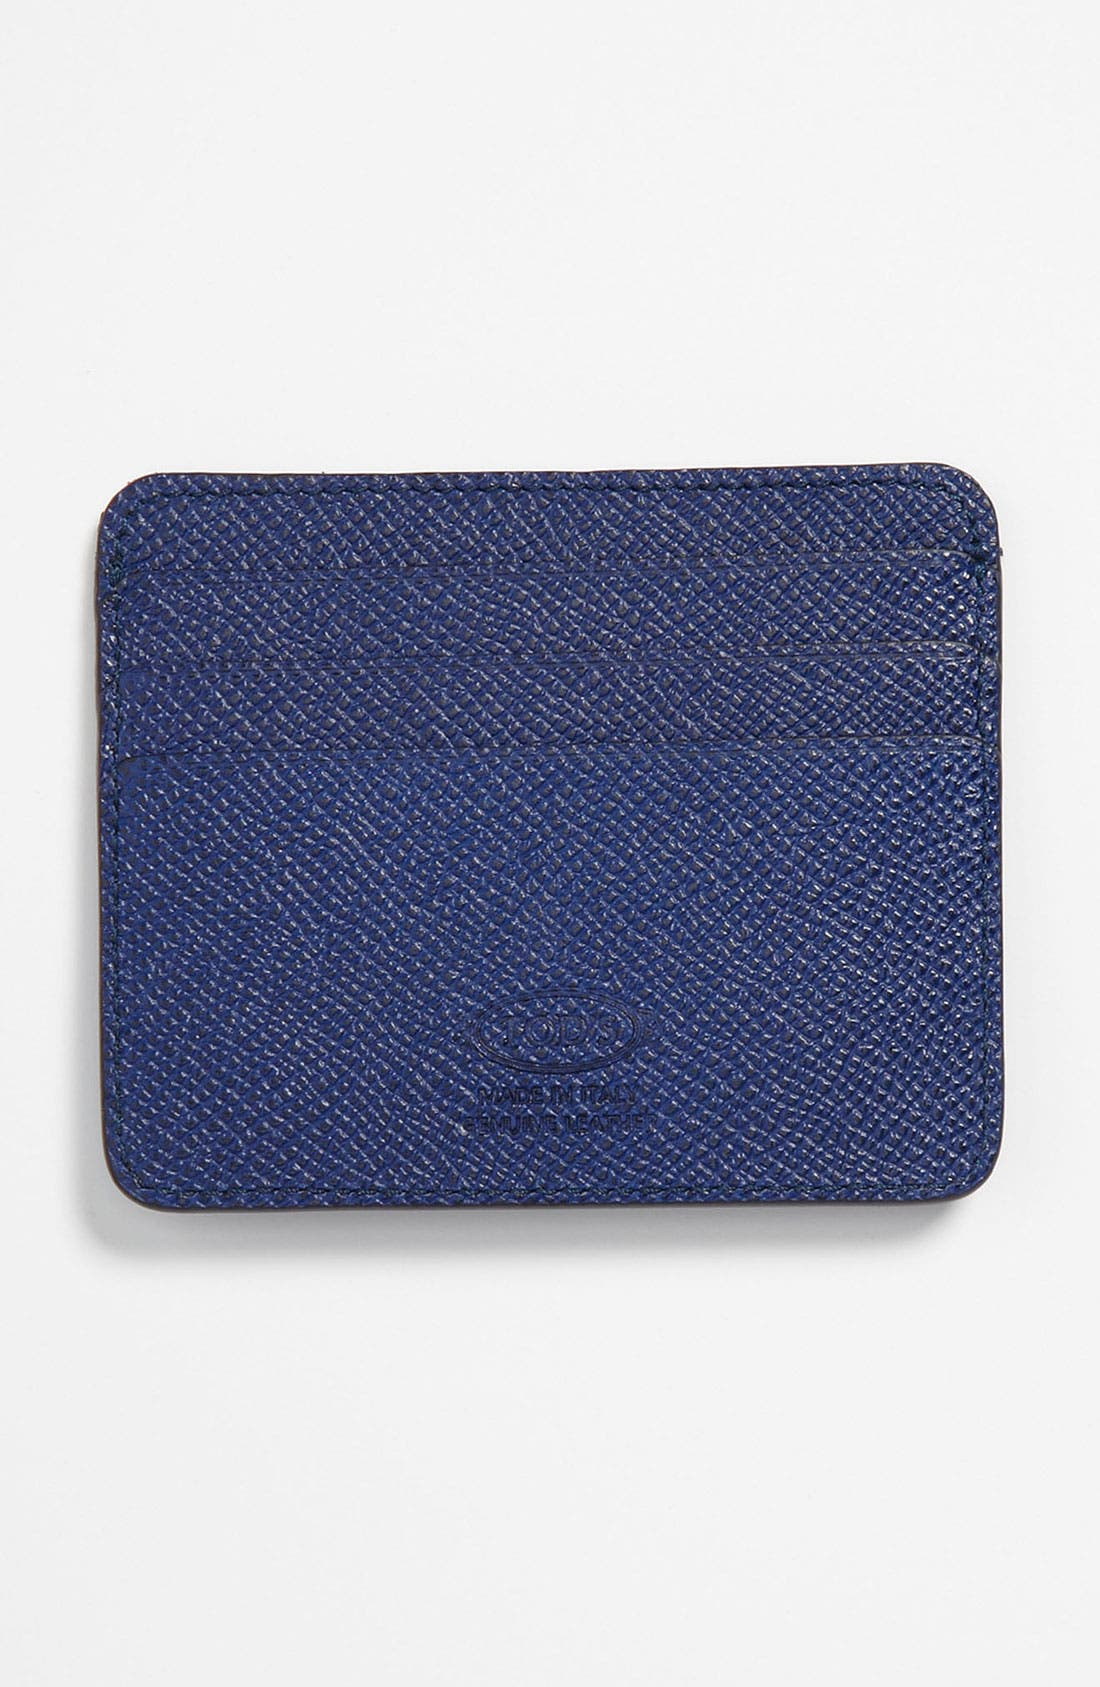 Alternate Image 2  - Tod's 'D-Styling - P.C. Credito New Mini' Leather Card Case